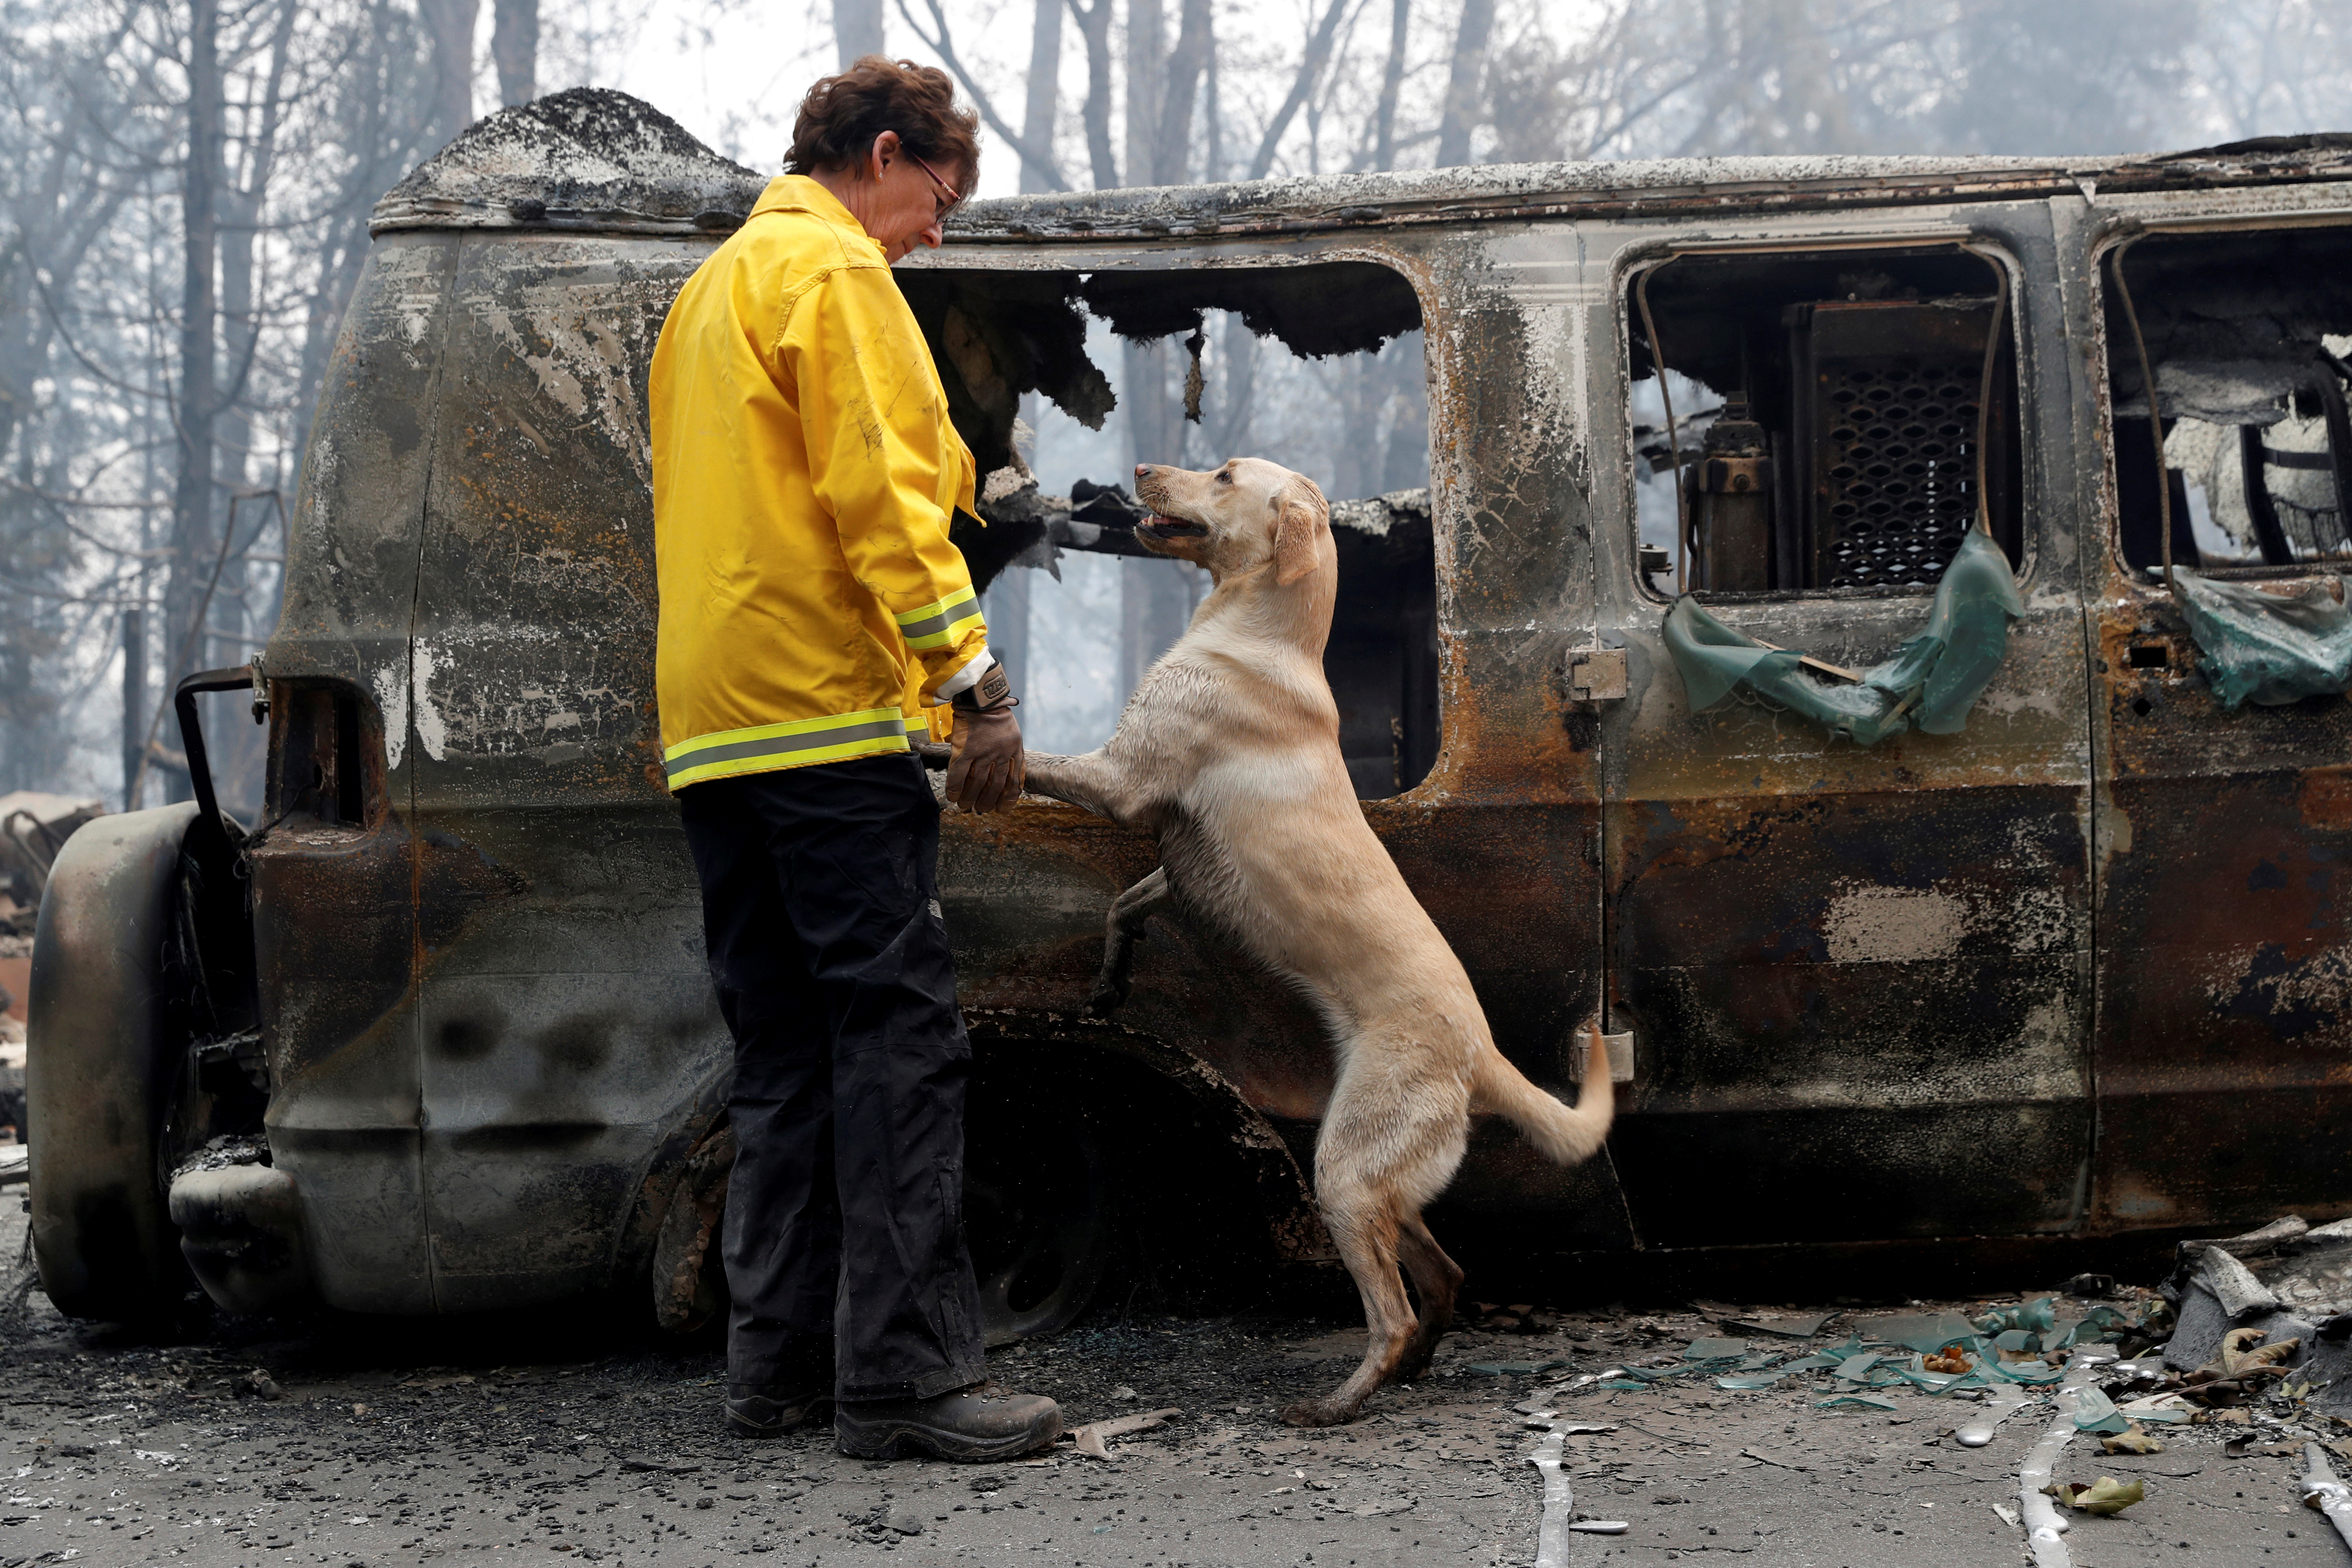 Karen Atkinson, of Marin, searches for human remains with her cadaver dog, Echo, in a van destroyed by the Camp Fire in Paradise, California, U.S., November 14, 2018. REUTERS/Terray Sylvester